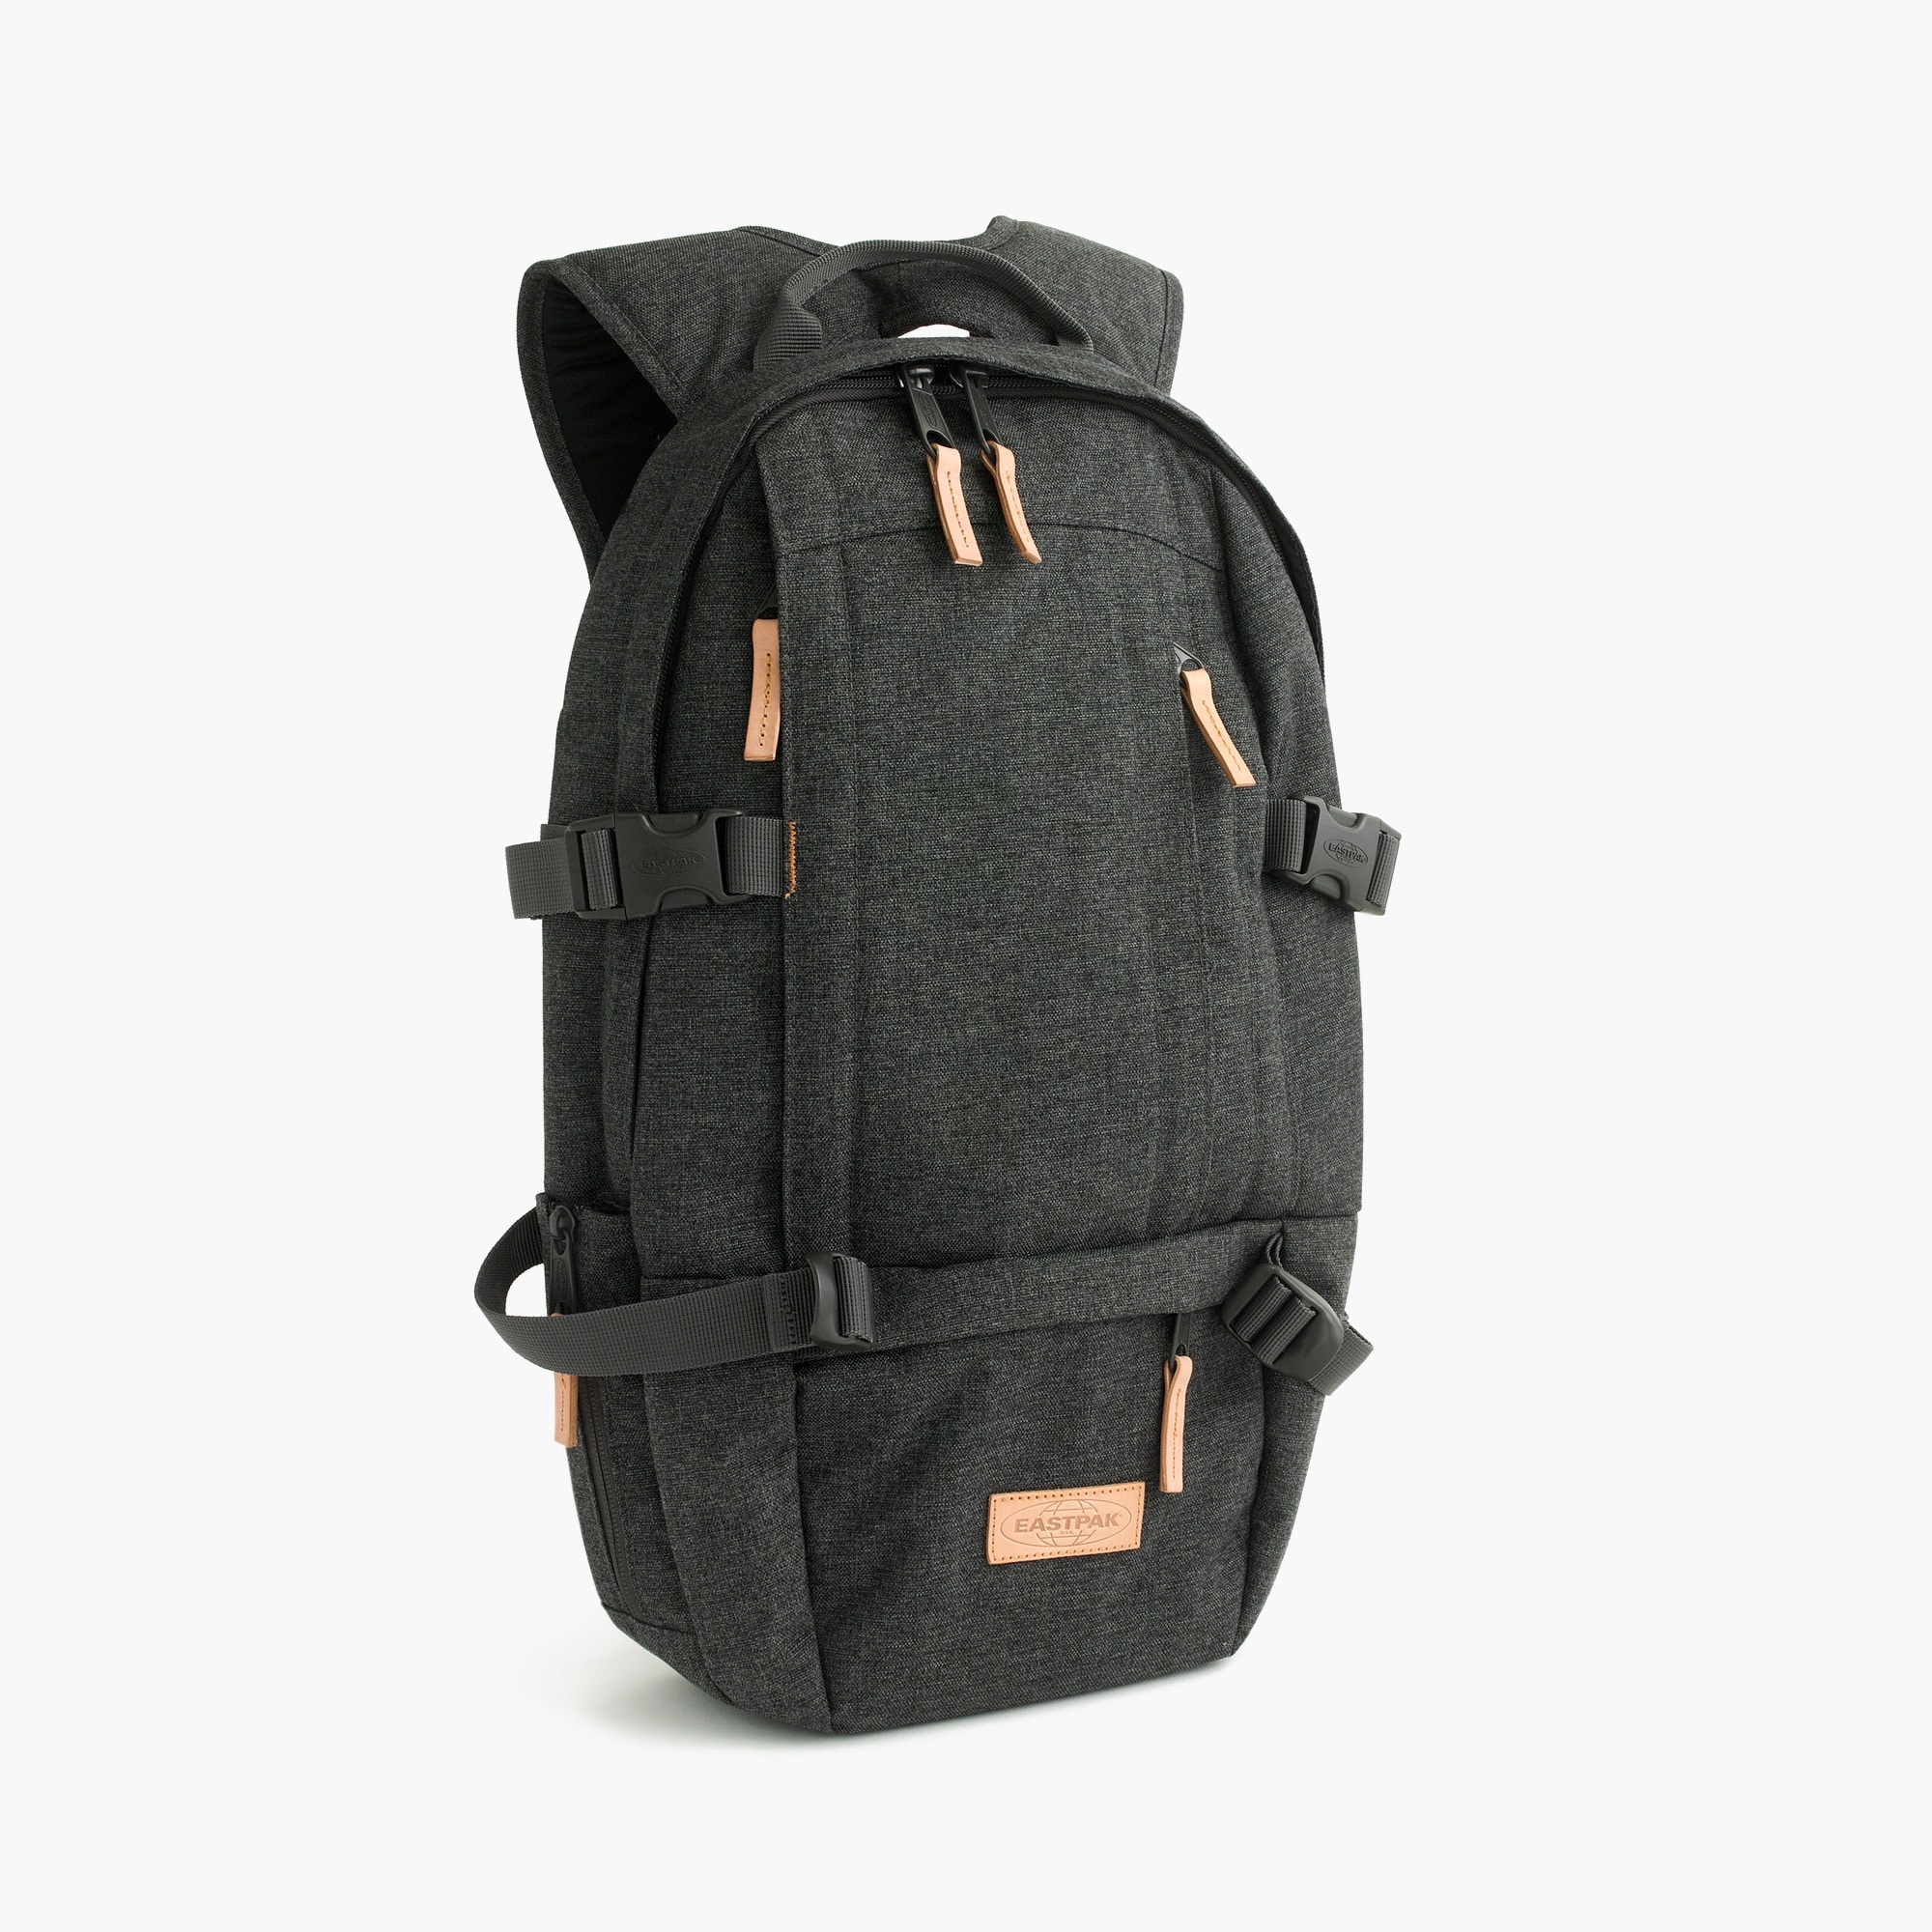 mens Eastpak® Floid backpack